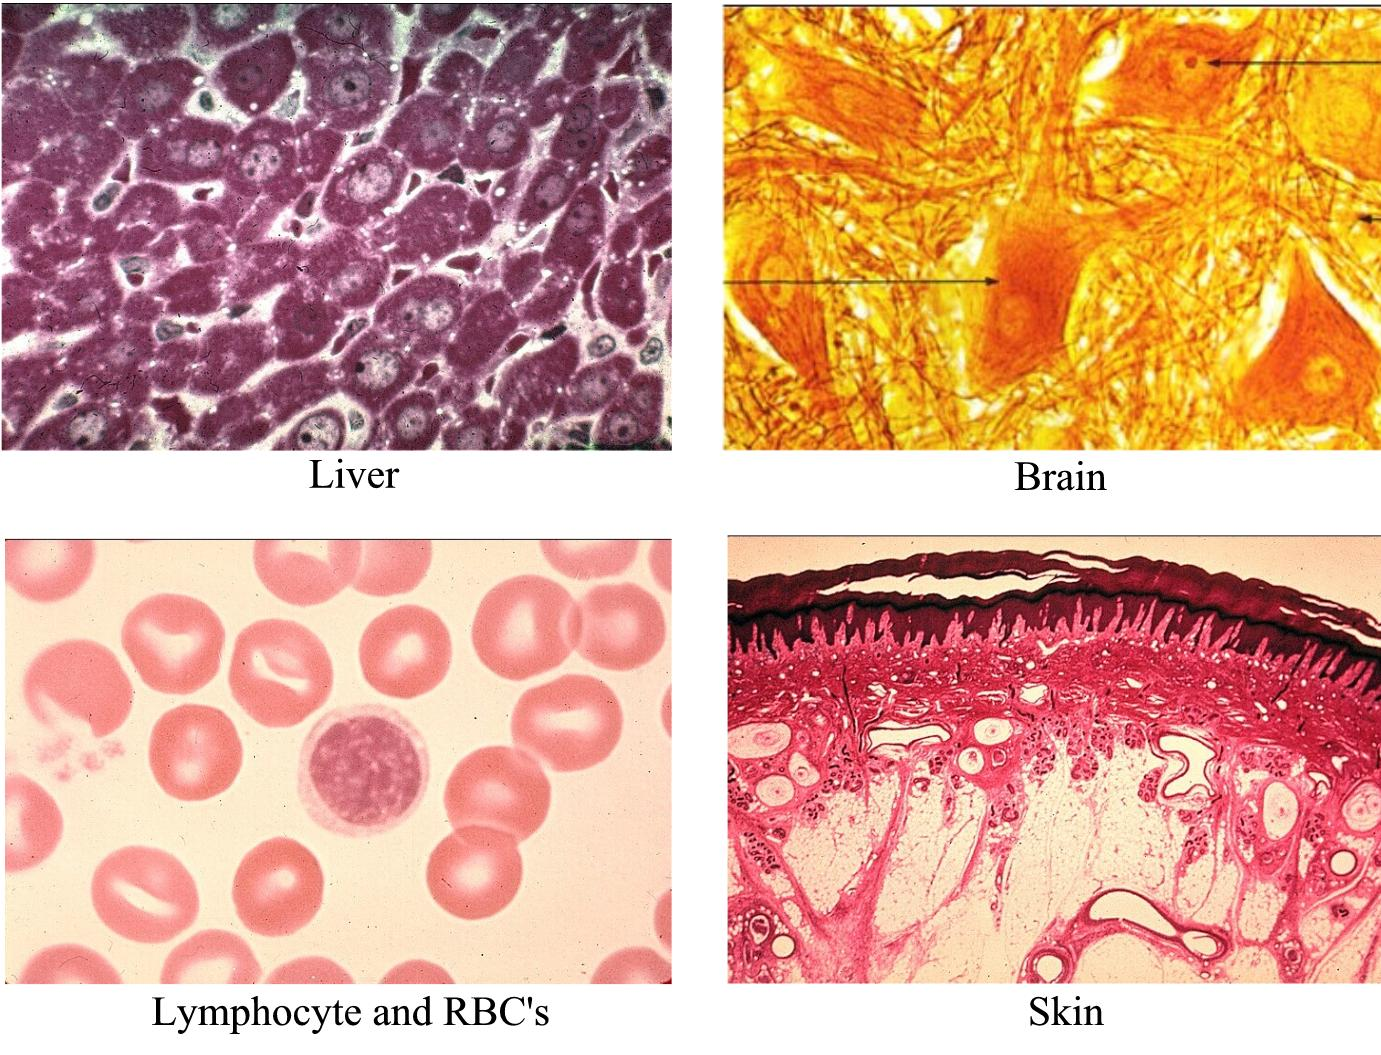 Images of tissues: liver, brain, lymphocytes & red blood cells (RBCs), and skin.